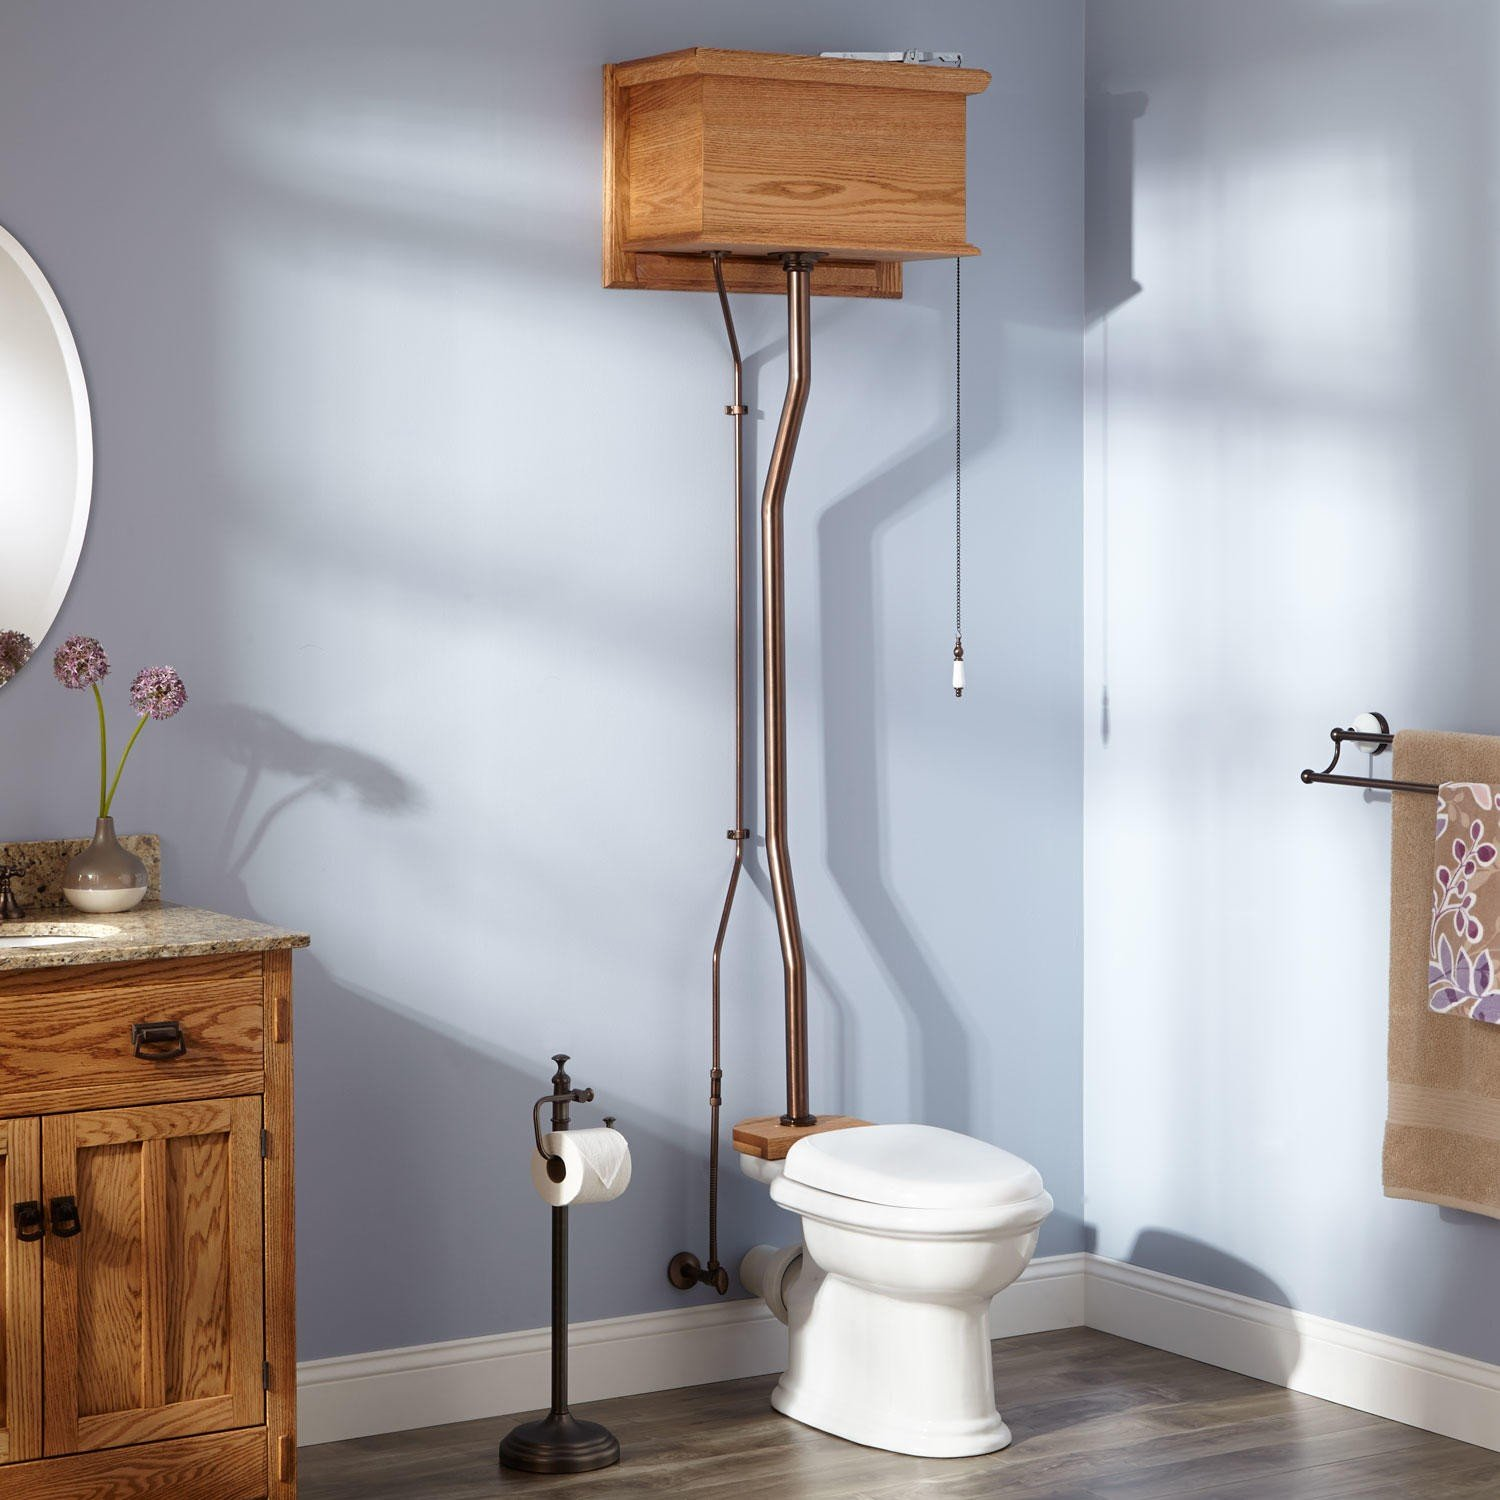 Naiture Golden Oak High Tank Pull Chain Water Closet With Rear Outlet Bowl And Oil Rubbed Bronze Finish Hardware